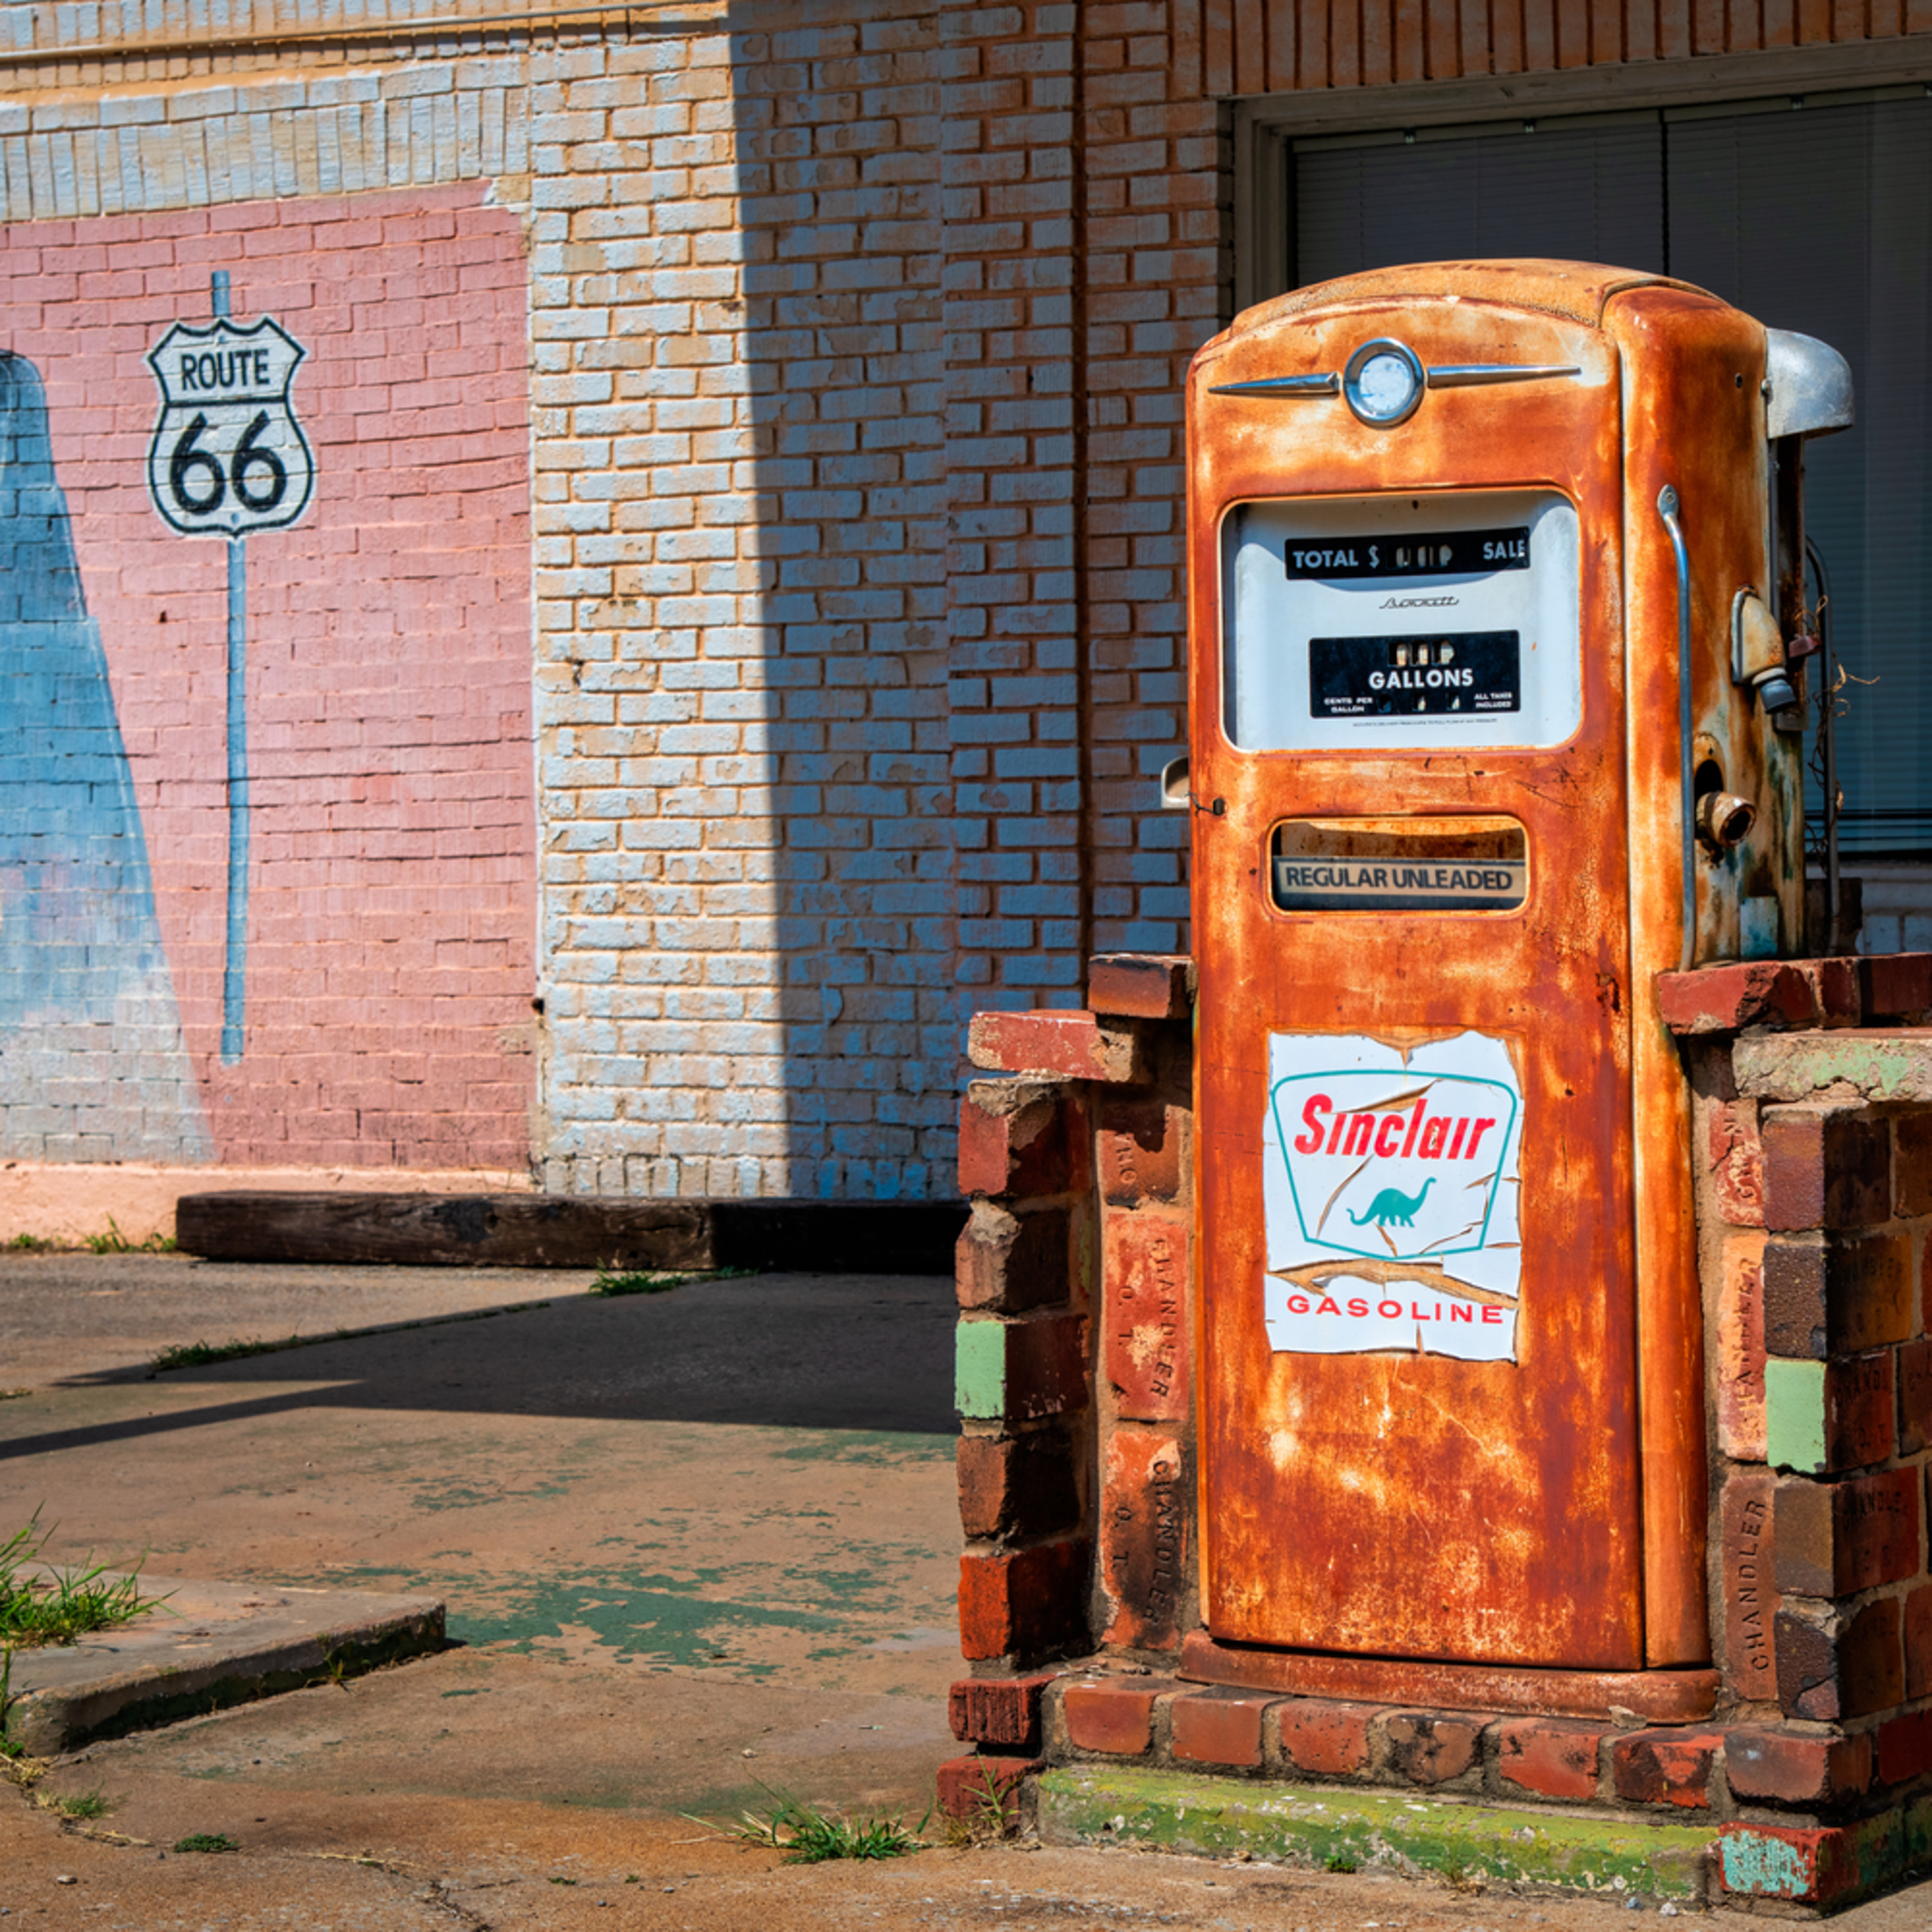 Andy crawford photography route 66 sinclair fuel pump 1 evrzoh